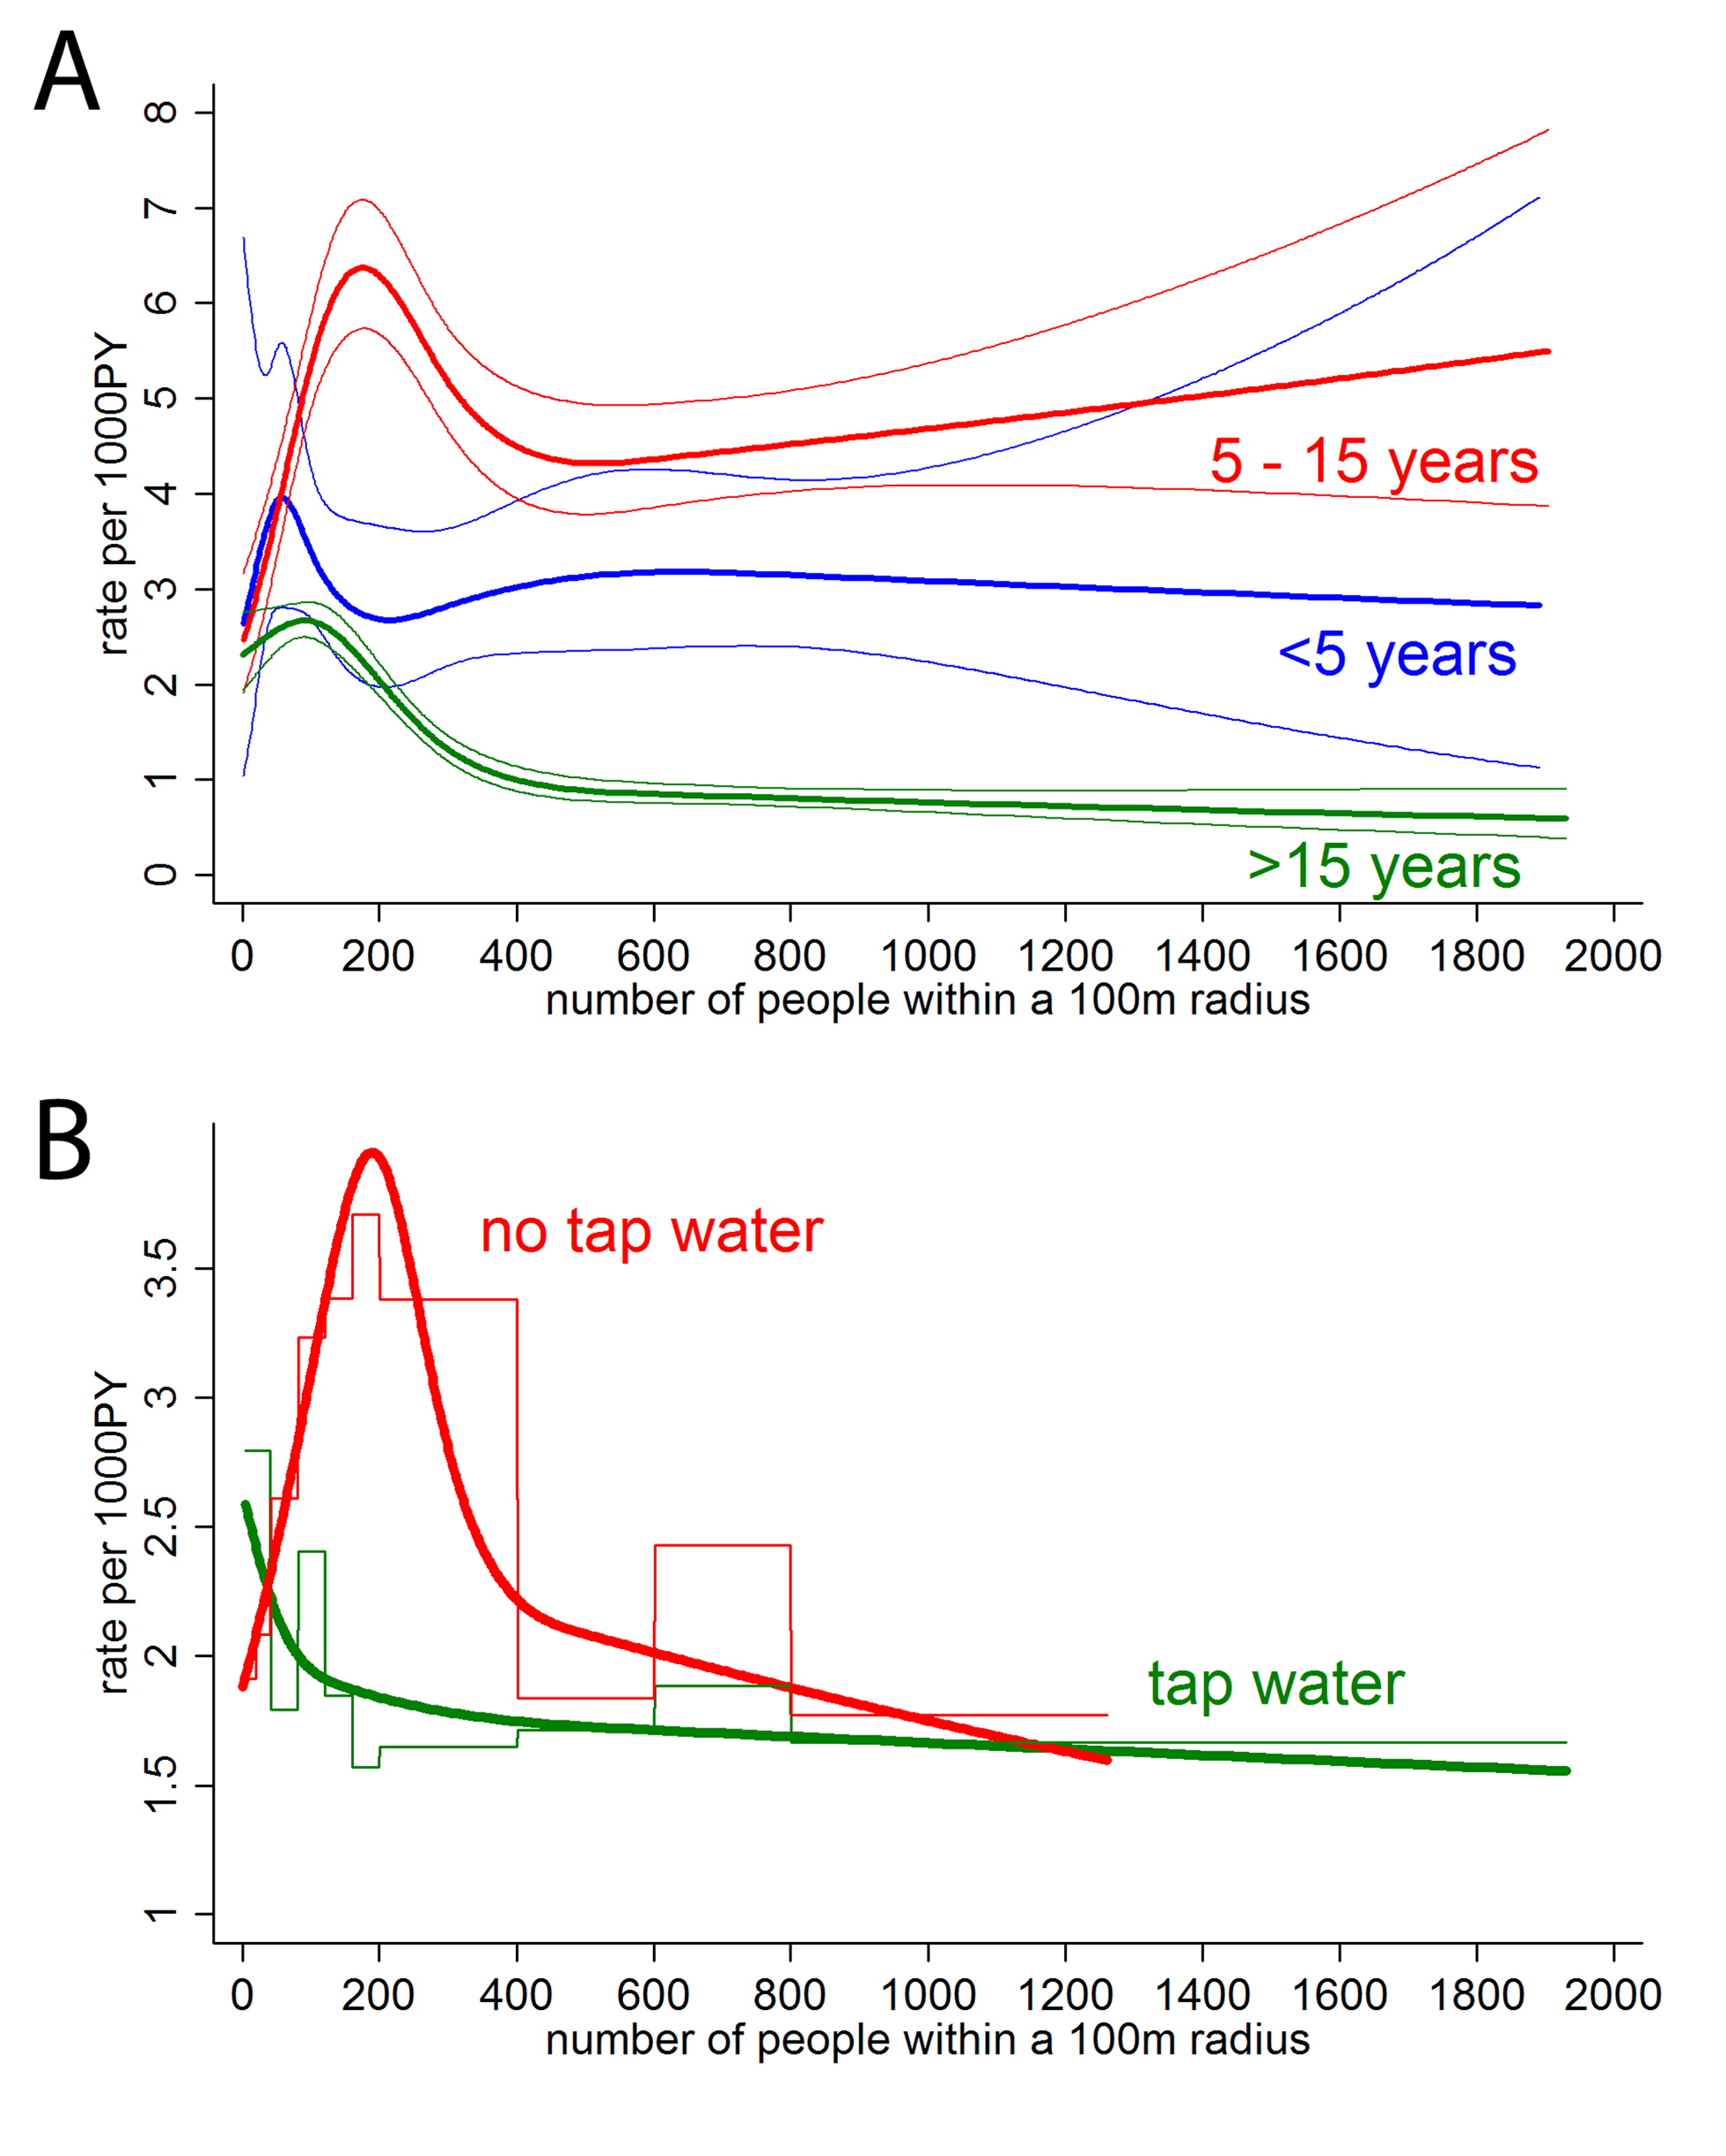 Subgroup analysis by age (A) and water supply (B).